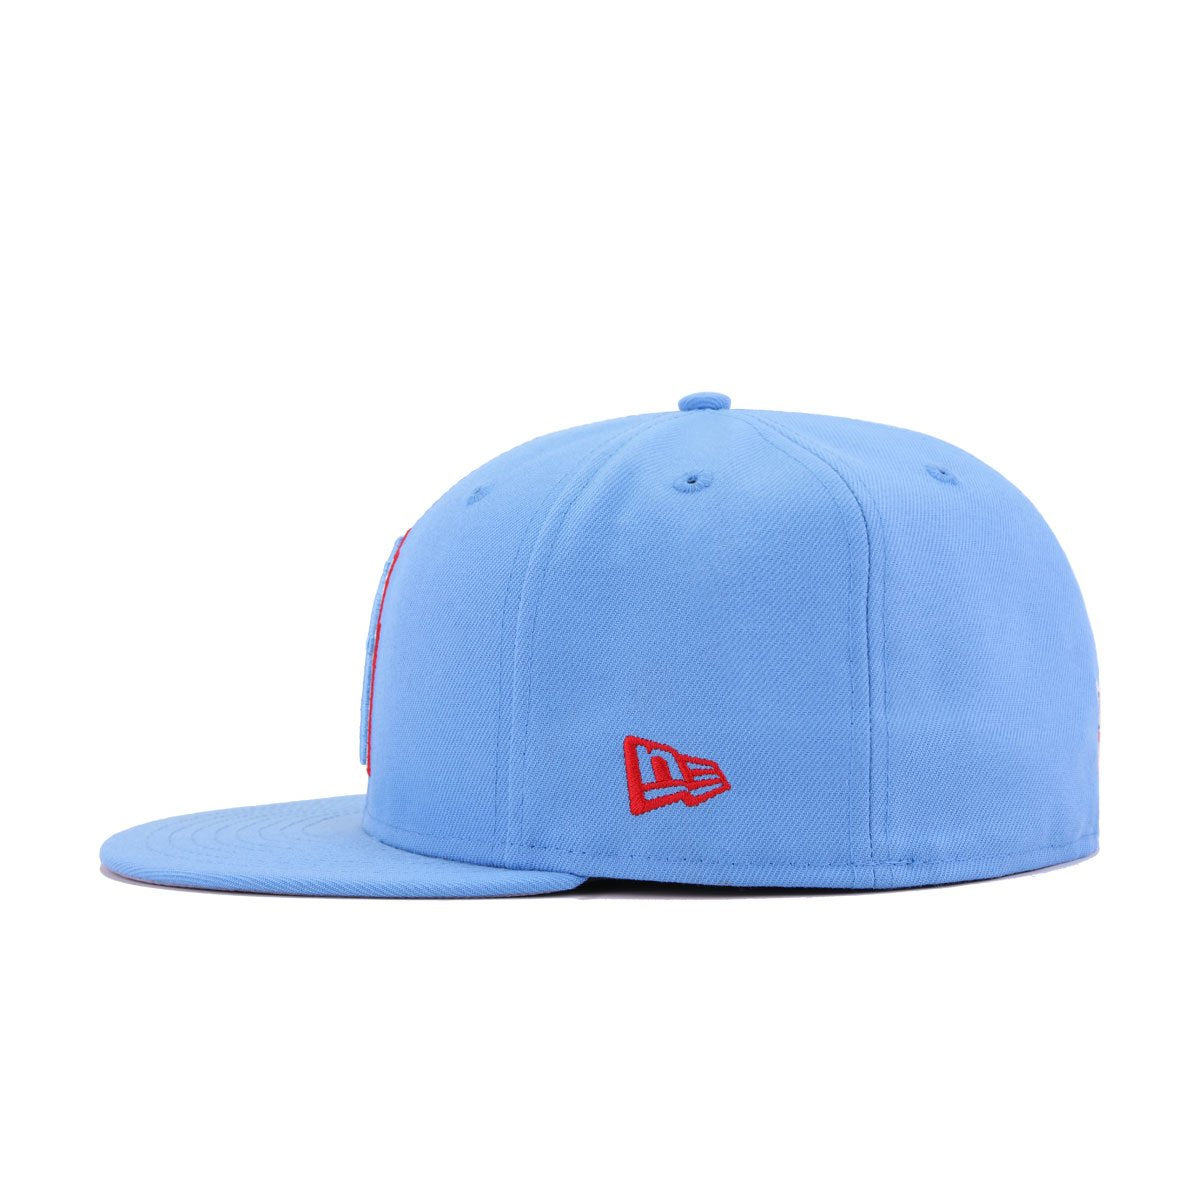 Houston Oilers Radiant Blue New Era 59Fifty Fitted